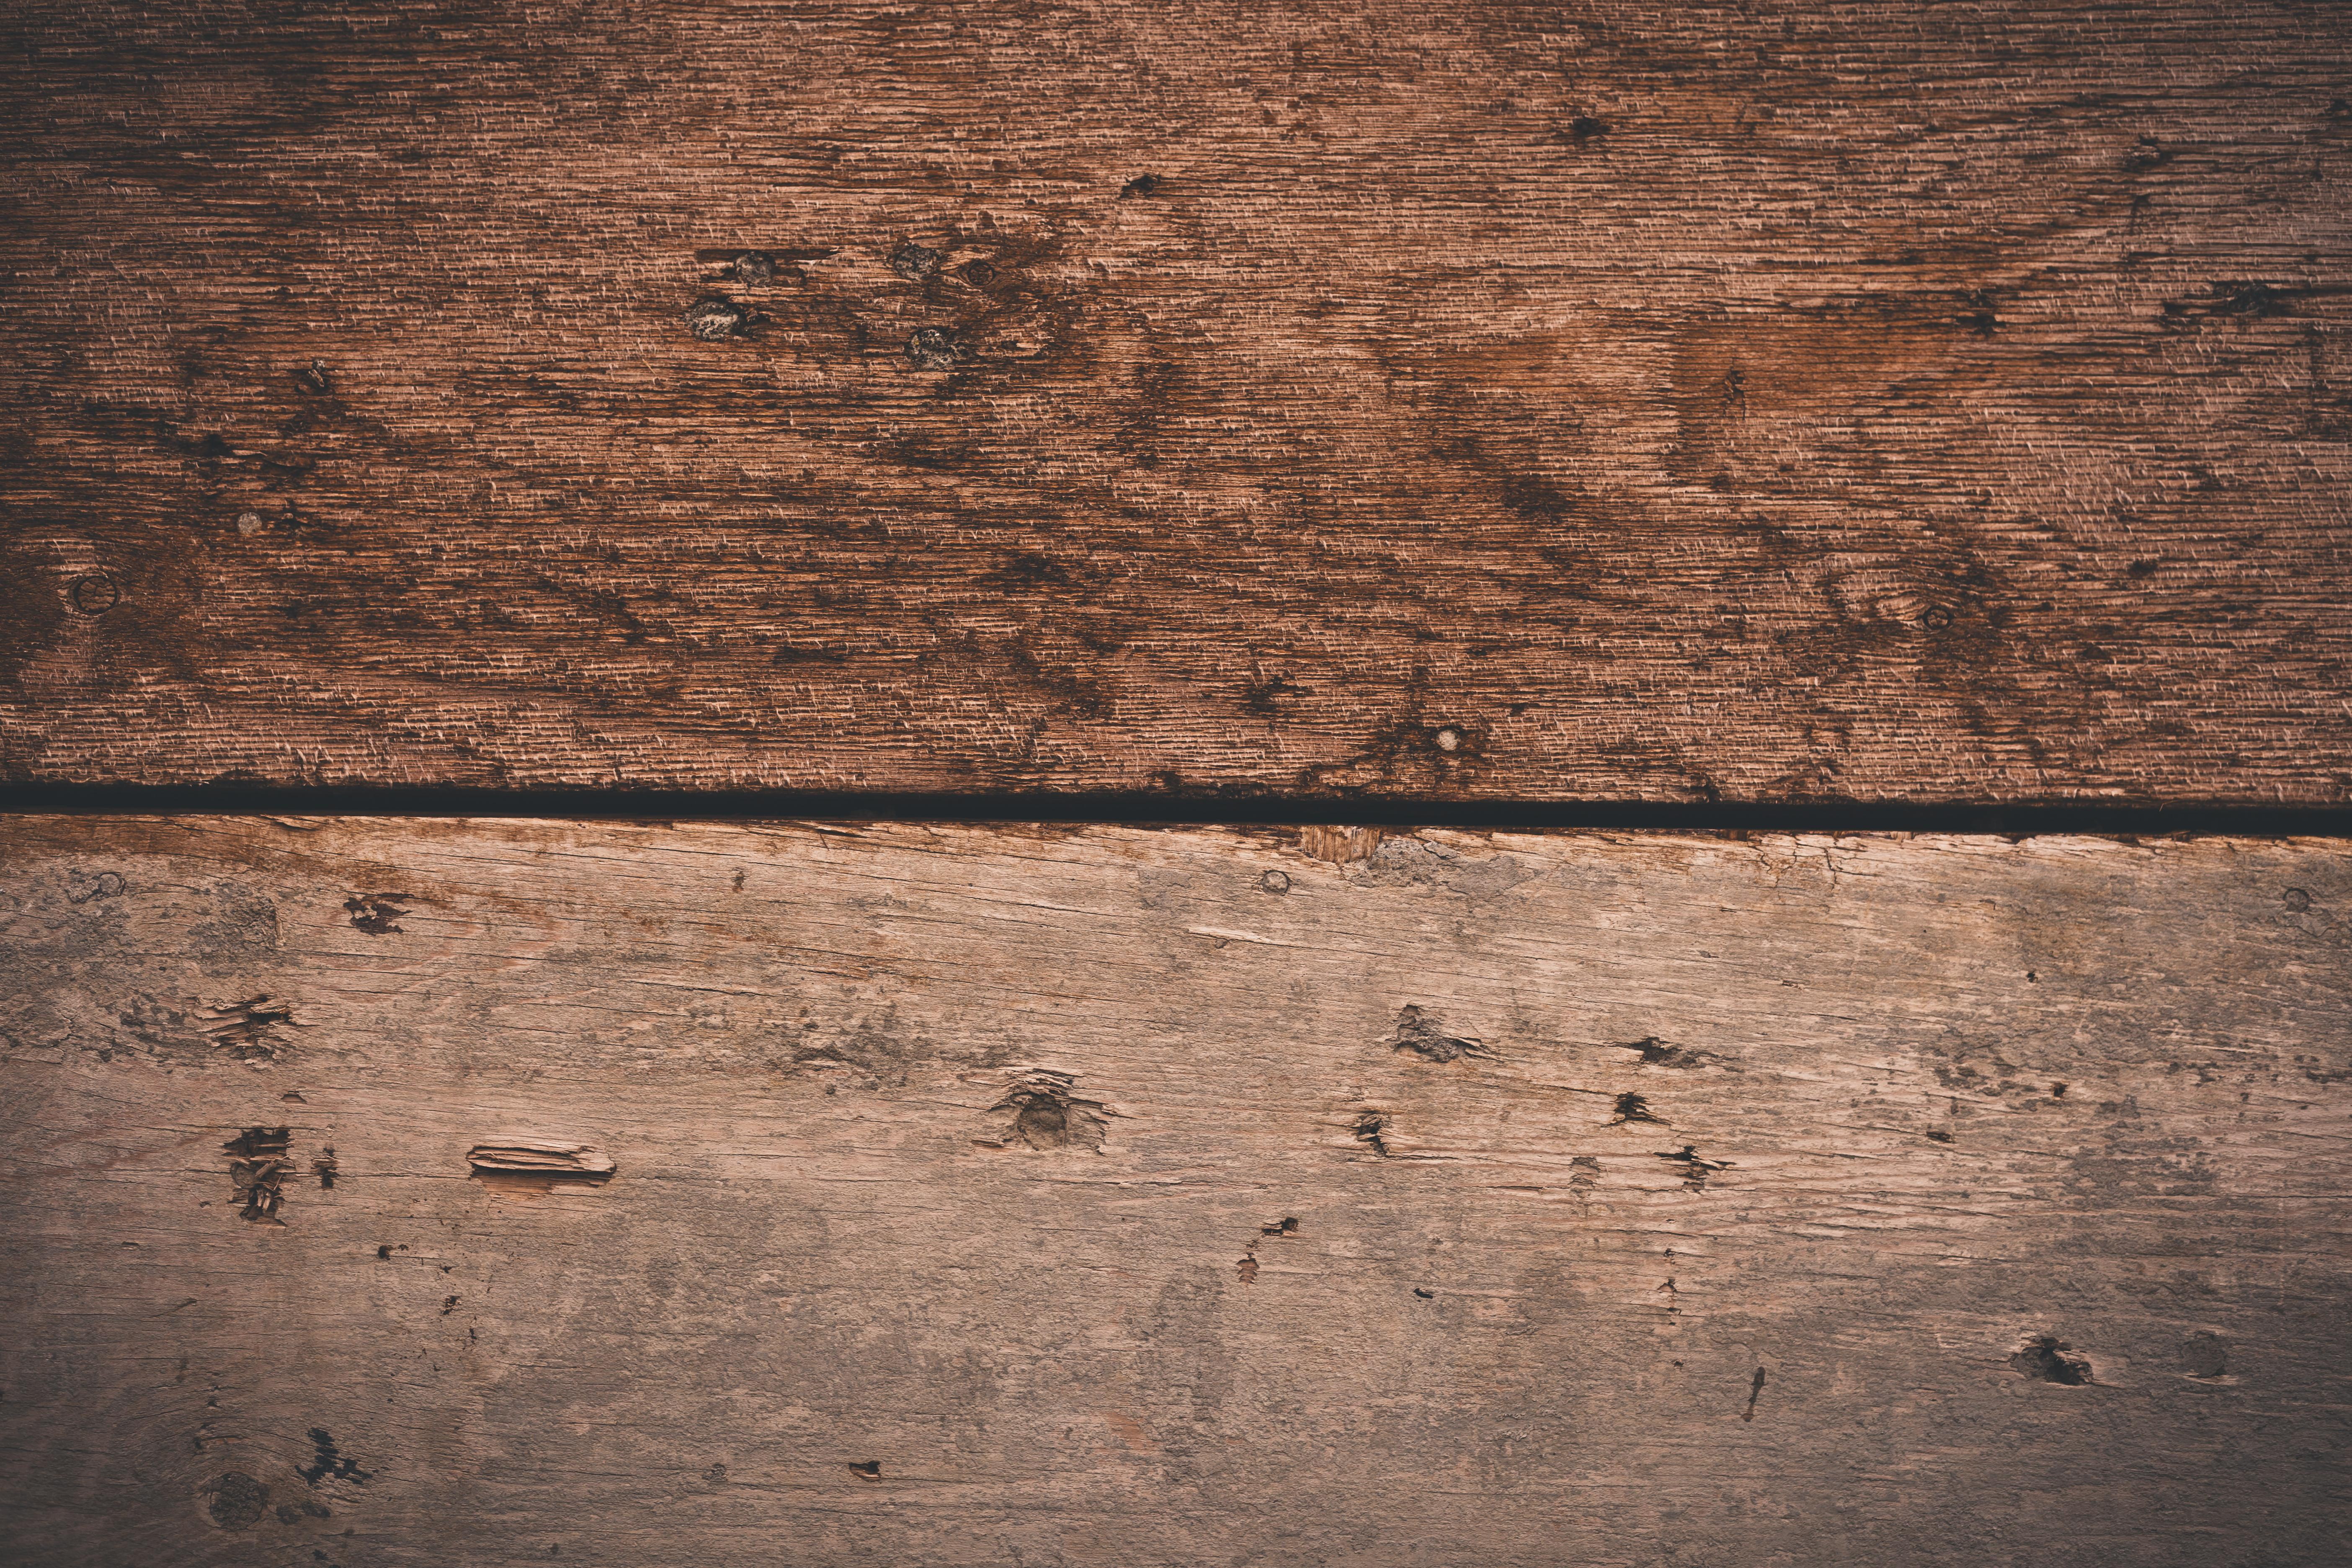 Grunge Wood Texture Commercial | HQ Photo Grunge Wood Texture